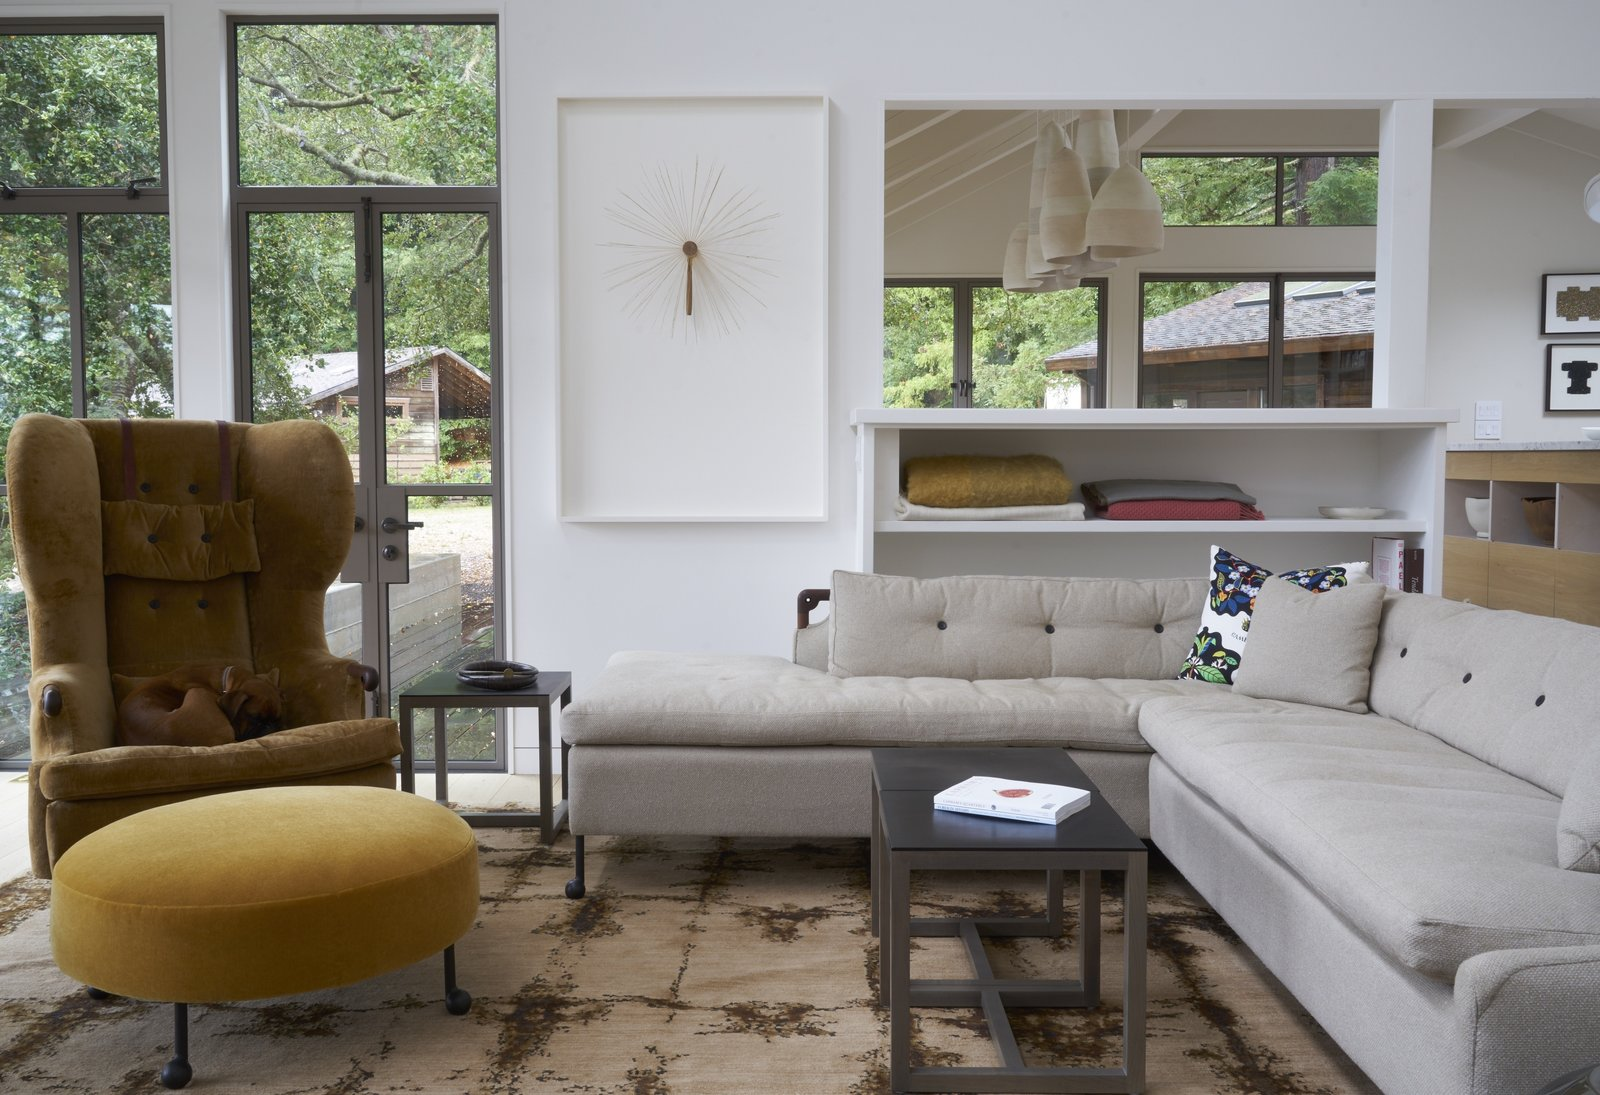 The living room features furniture from BDDW. Much of art arrayed throughout the home was collected through auctions; Southern Exposure and The Luggage Gallery are two favorite sources.  Photo 3 of 7 in A Northern Californian Renovation Brings Warmth to the Wilderness